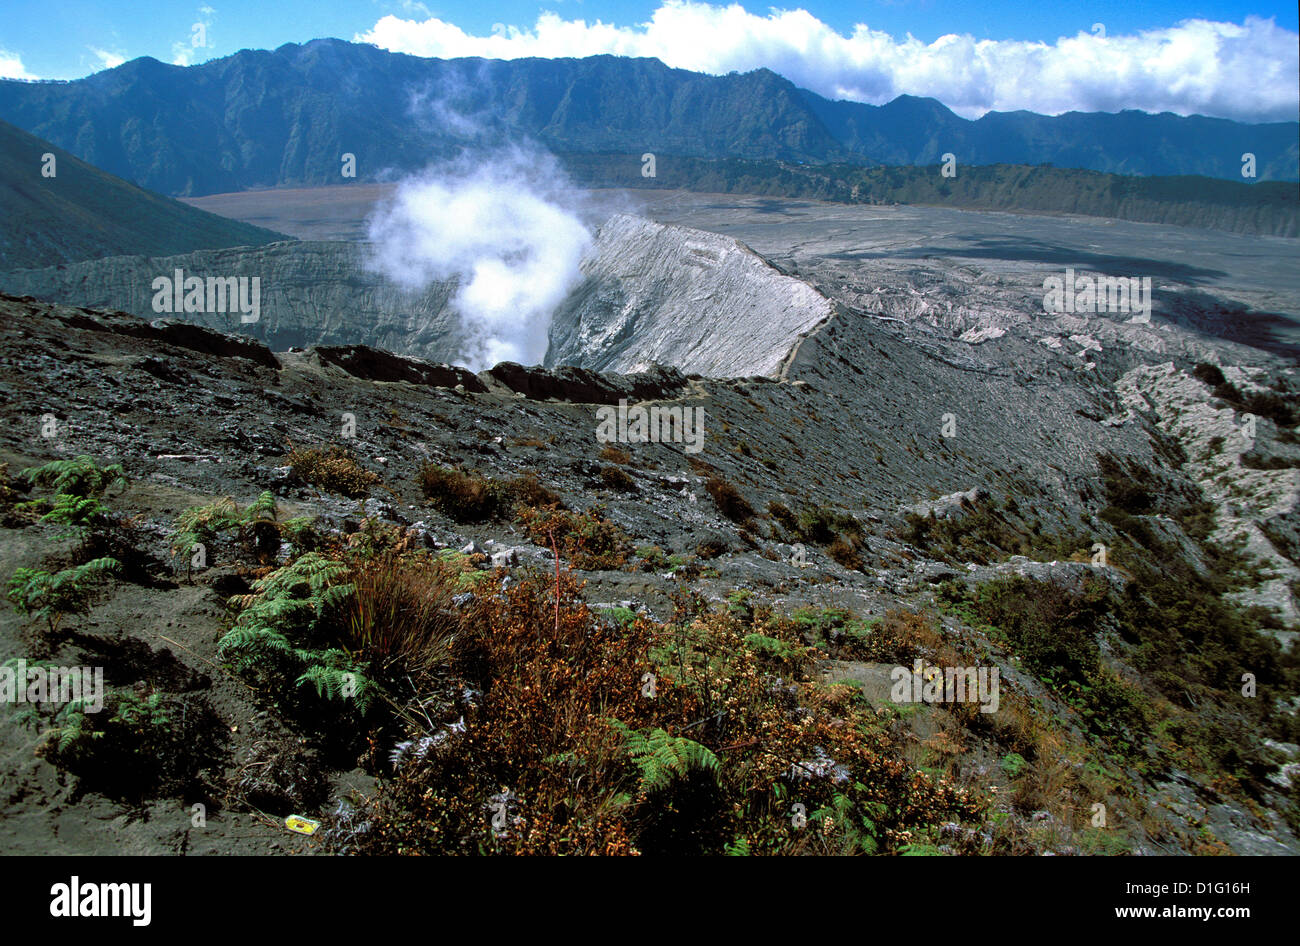 Caldeira and Bromo at 2329 m, and Semeru at 3676m, volcanoes on Java, Indonesia, Southeast Asia, Asia - Stock Image